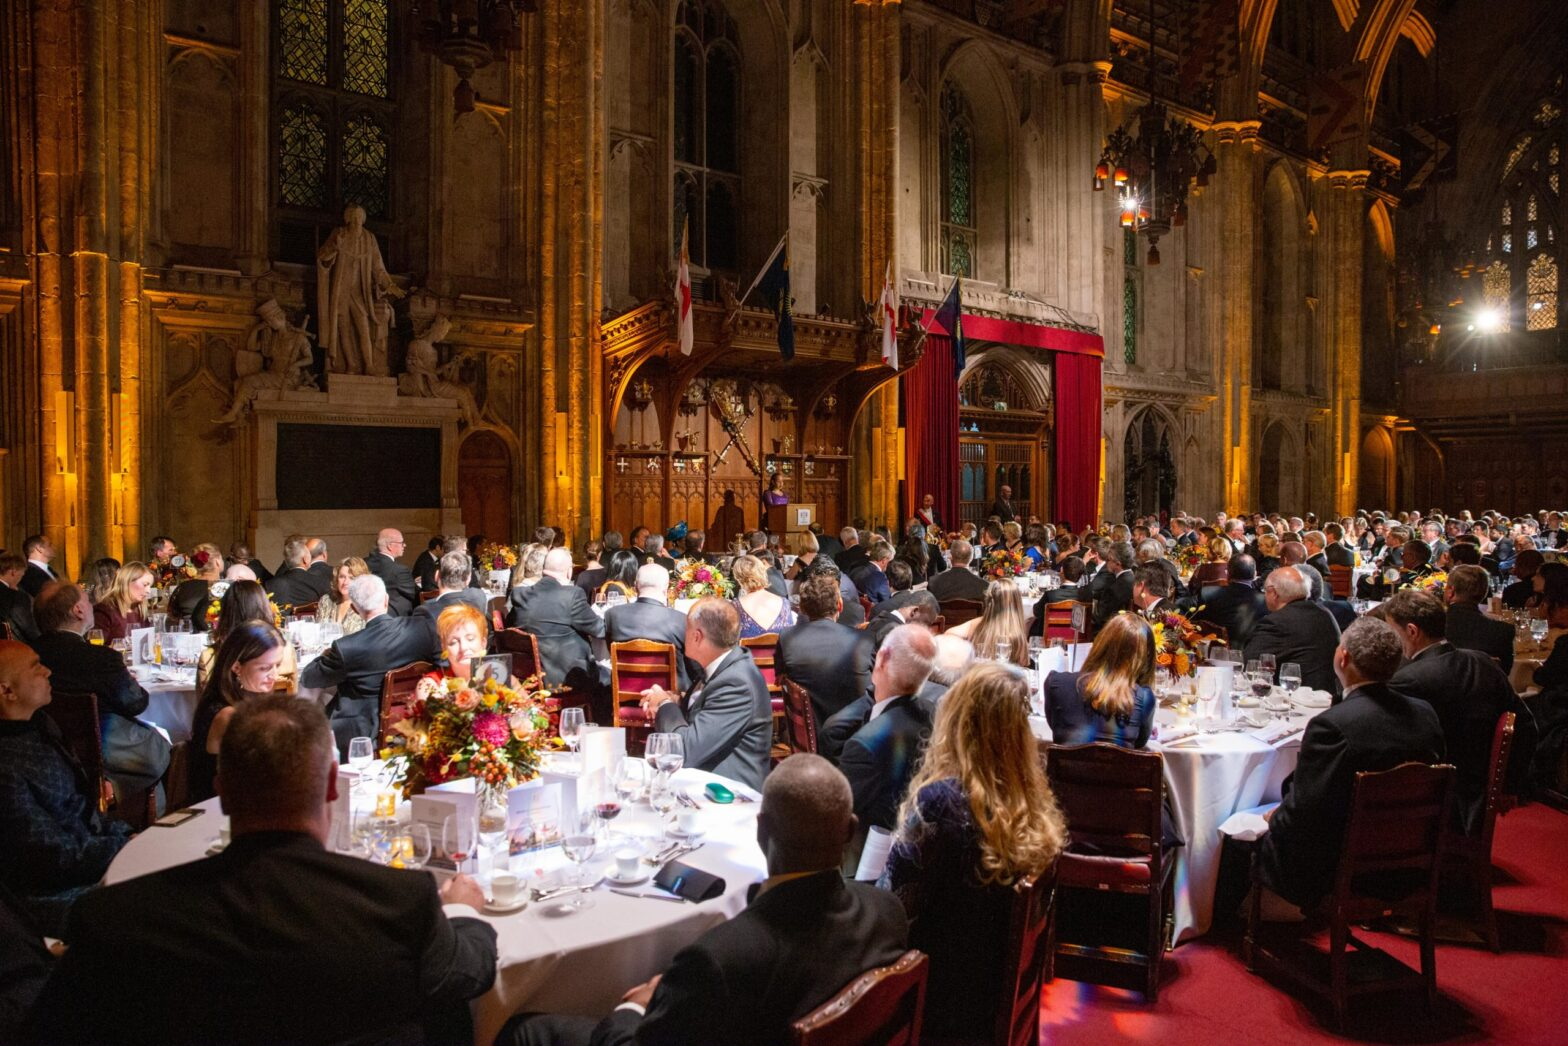 CWEIC Partners with the City of London Corporation and the Royal Commonwealth Society to host the High Commissioner's Banquet 2019